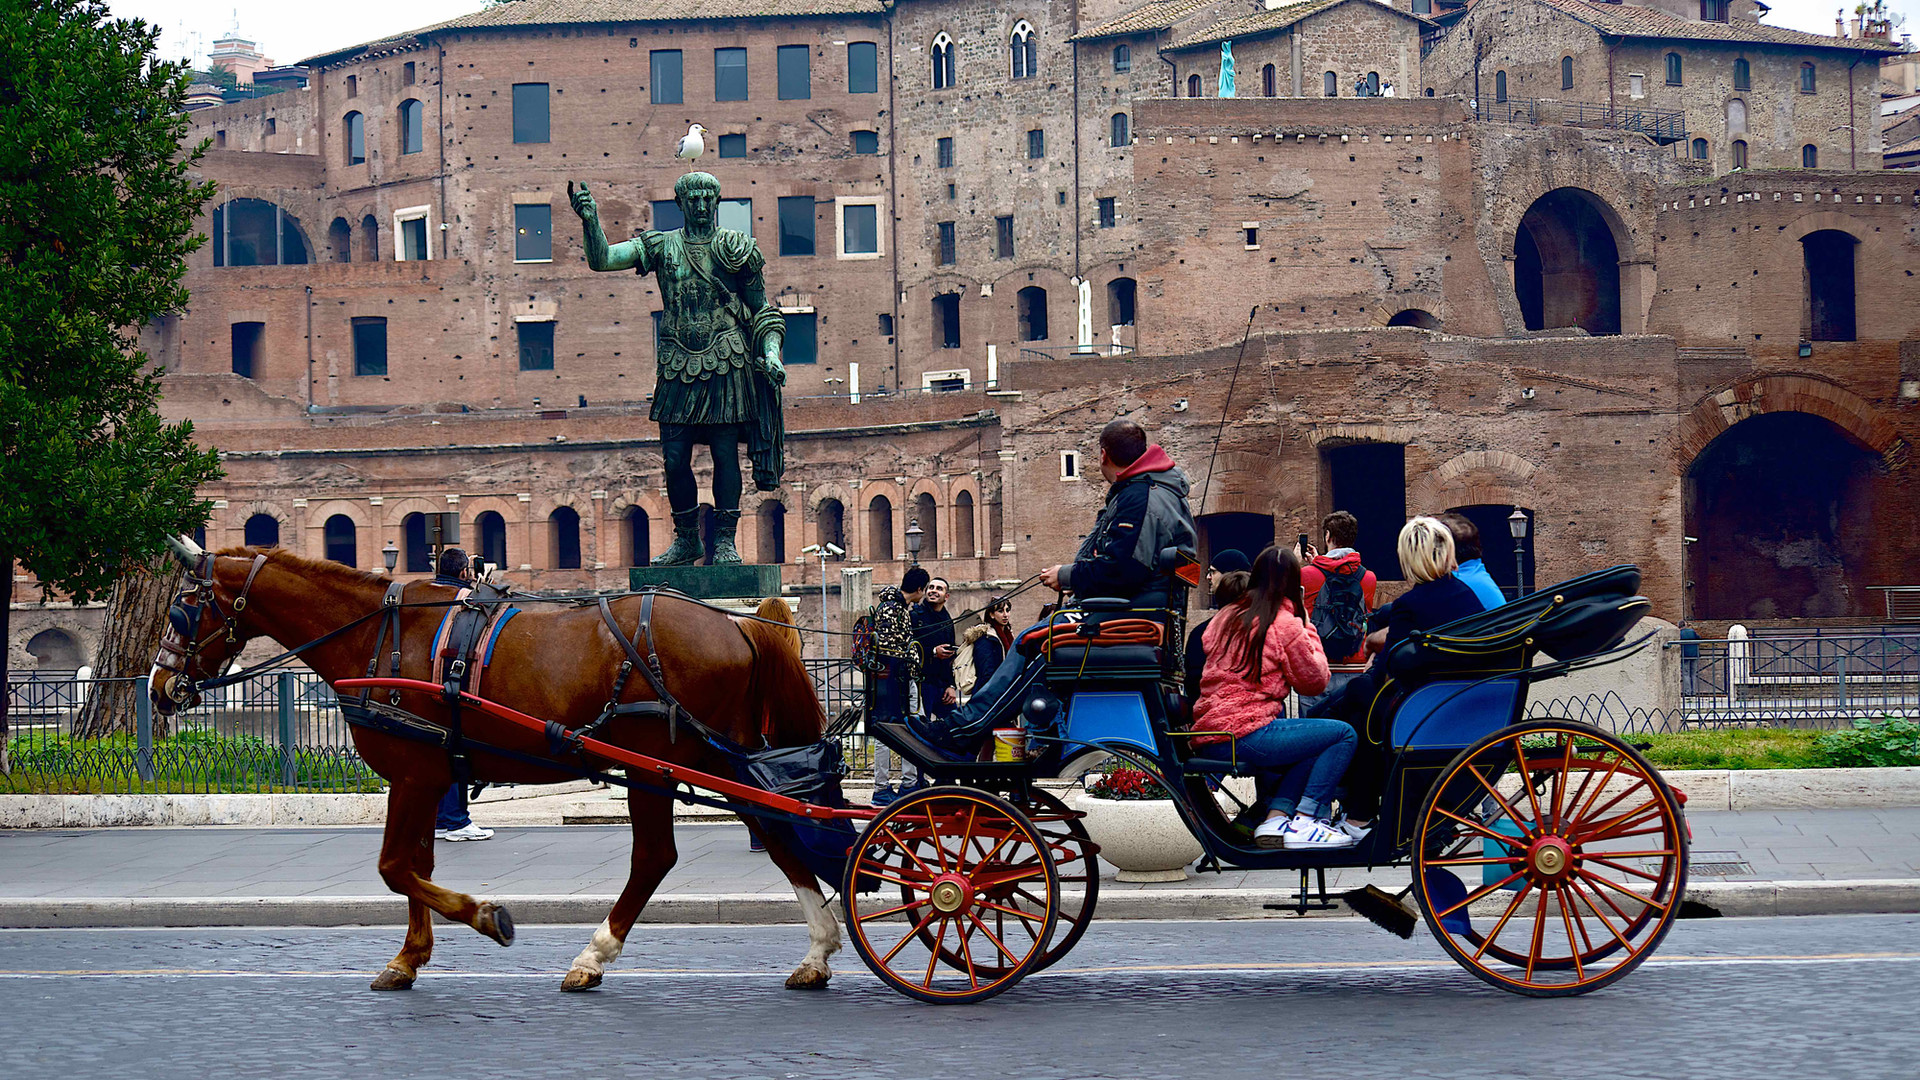 A traditional ride in Rome